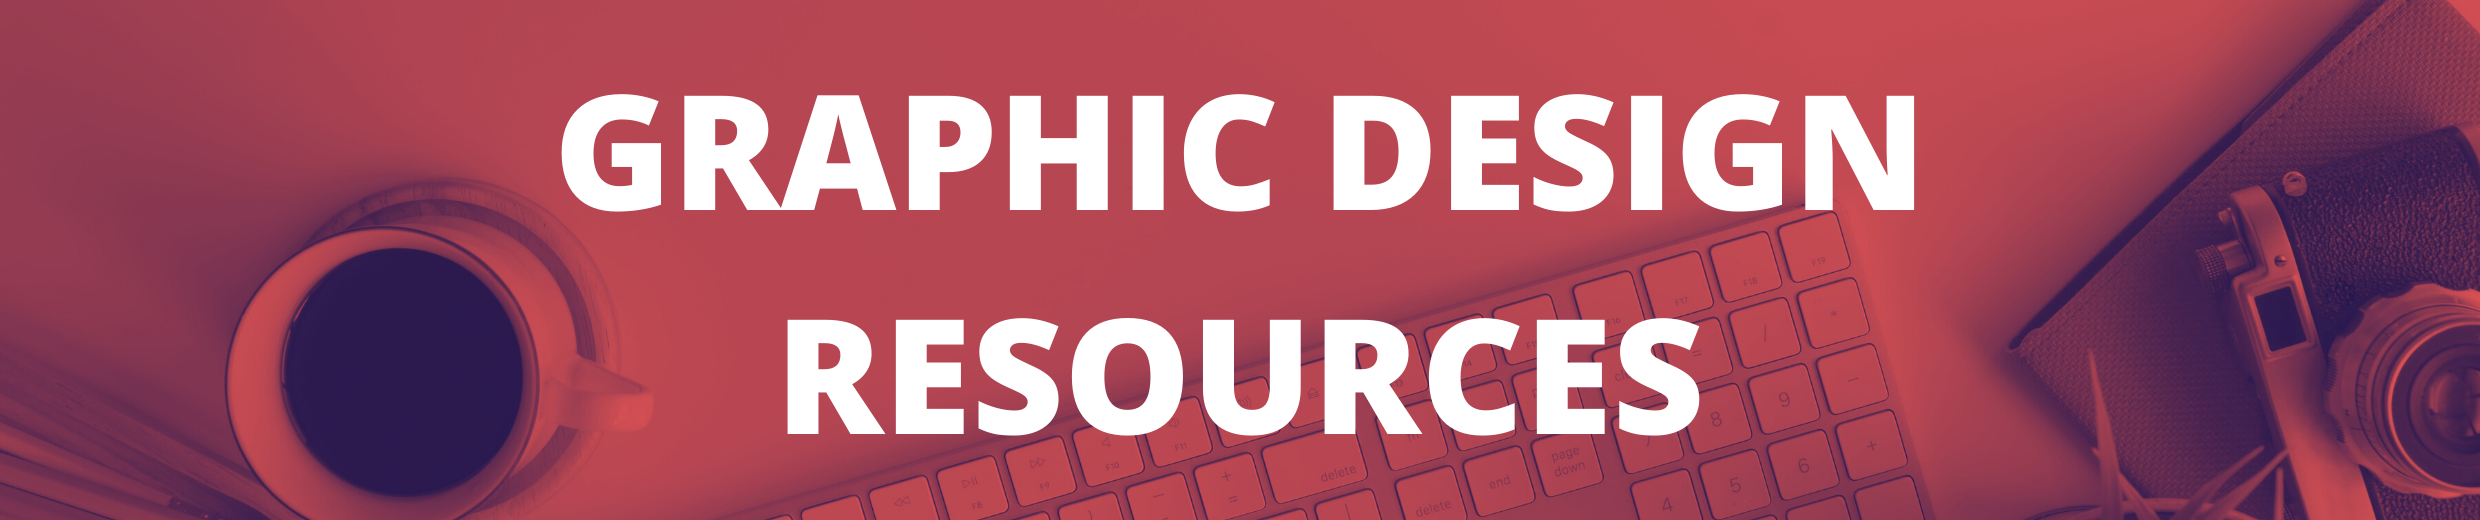 Graphic Design Resources Header